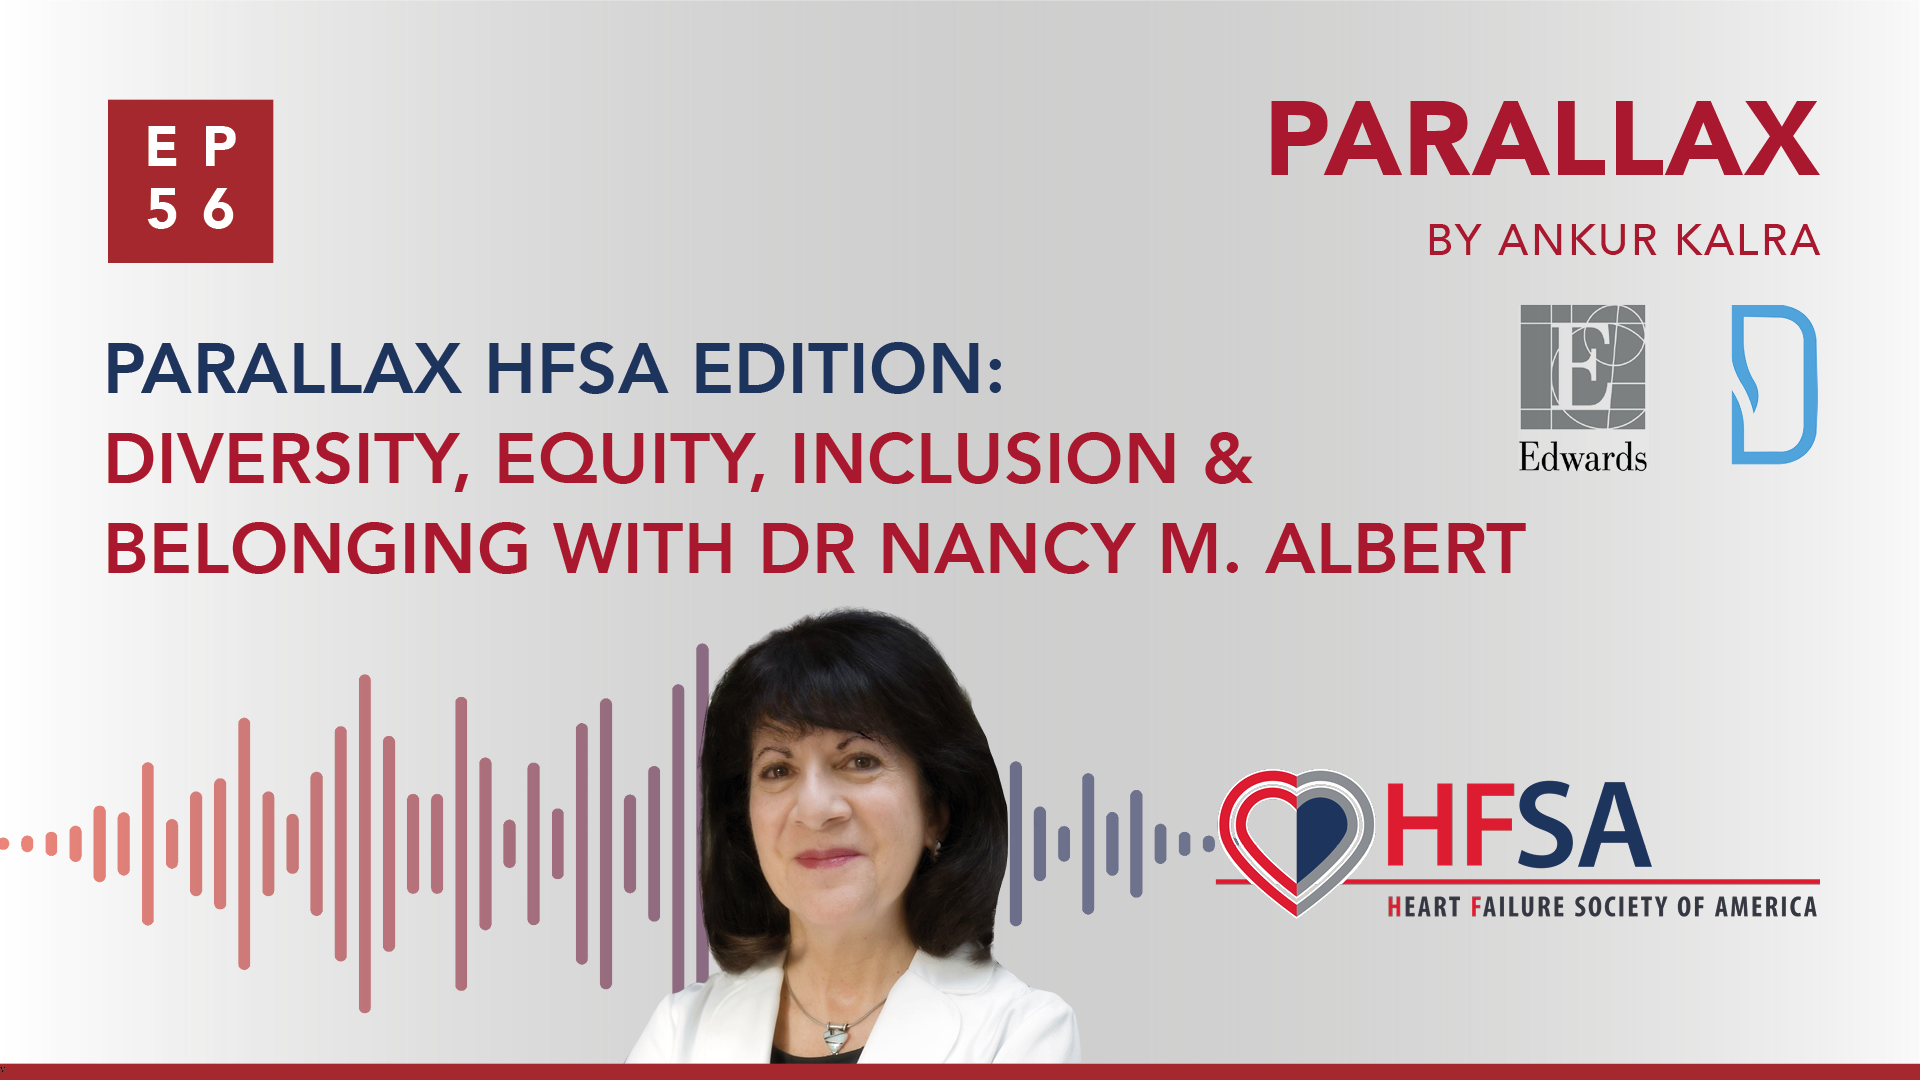 Parallax HFSA Edition: Diversity, Equity, Inclusion & Belonging with Dr Nancy M. Albert